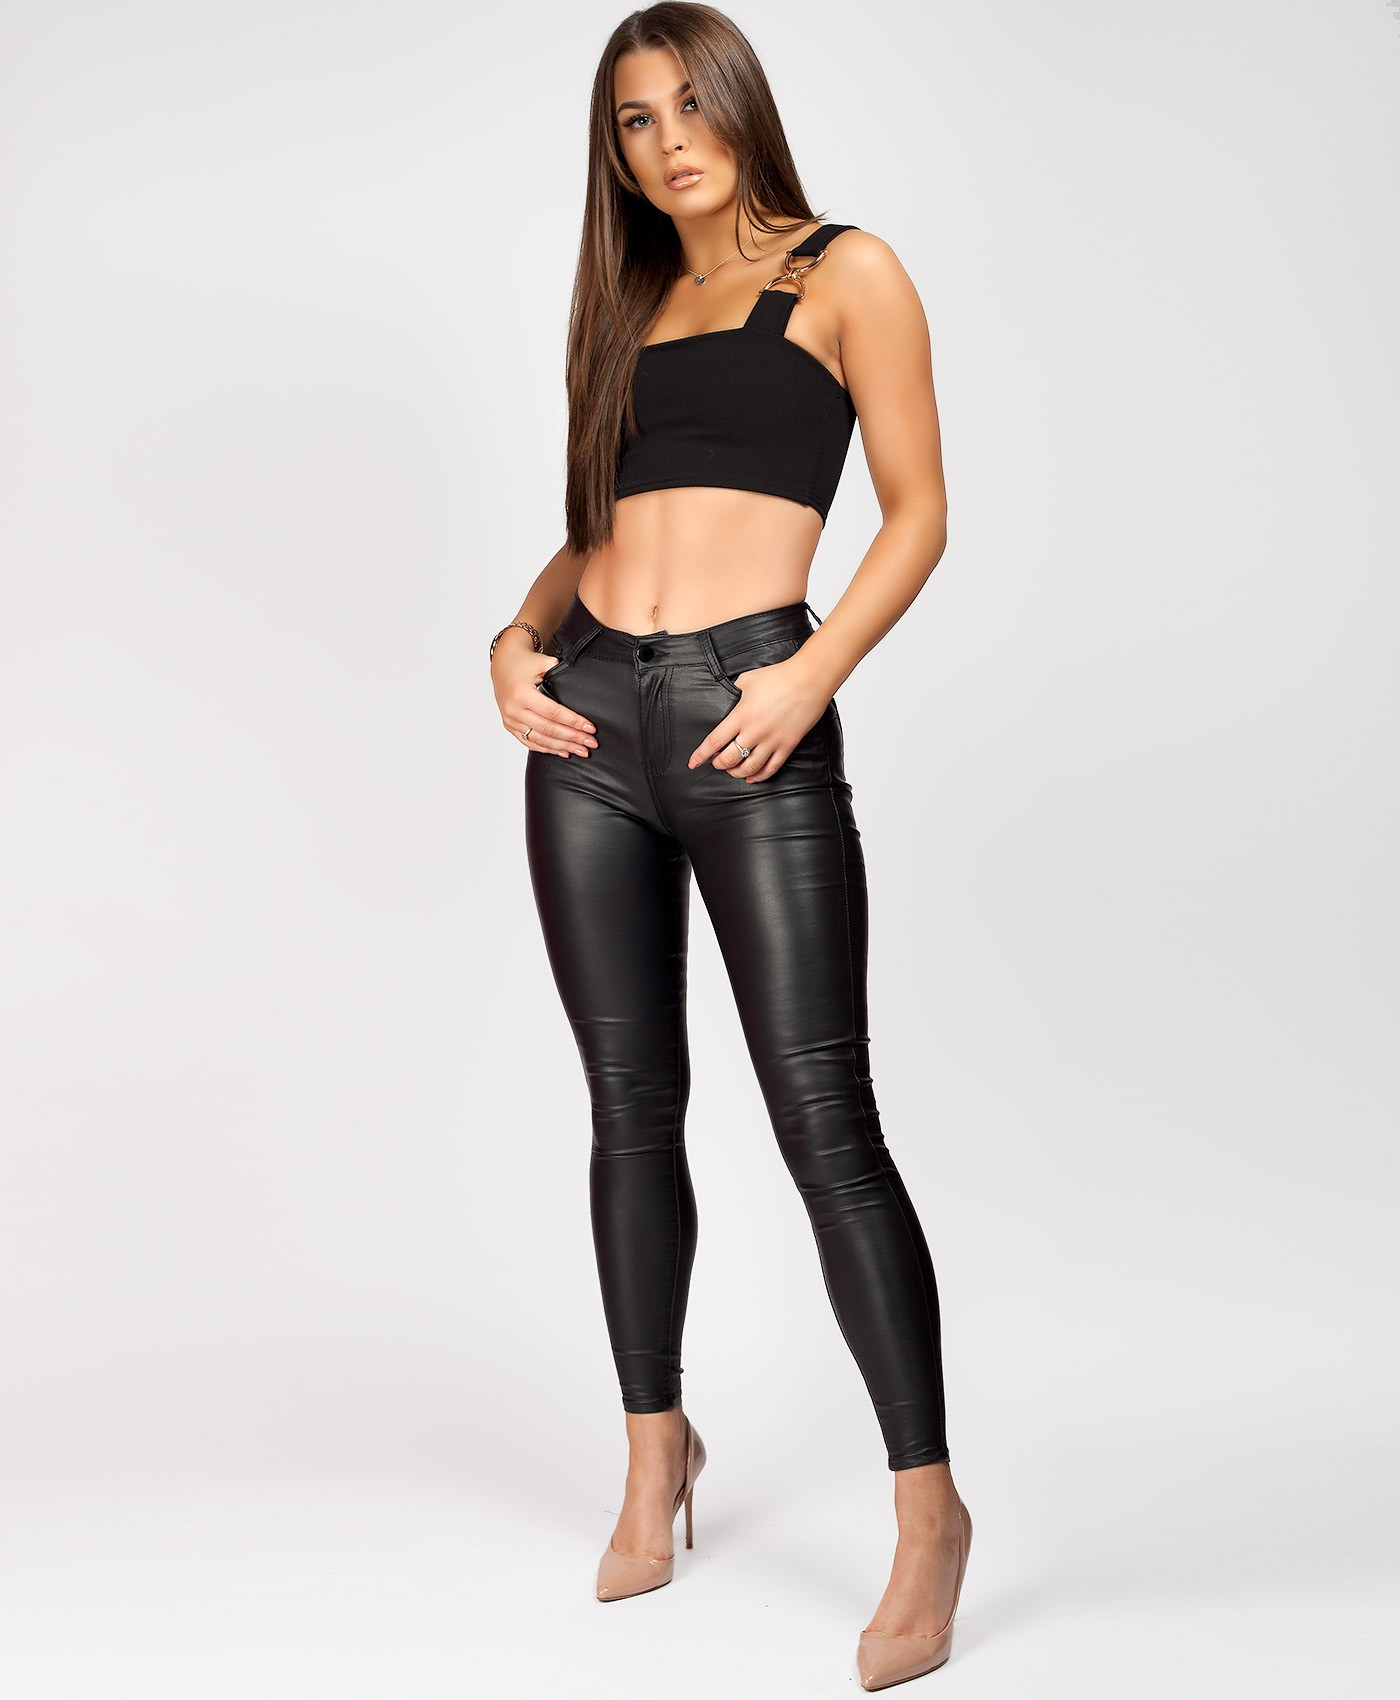 Black-Wet-Look-PU-PVC-Coated-Jeans-2